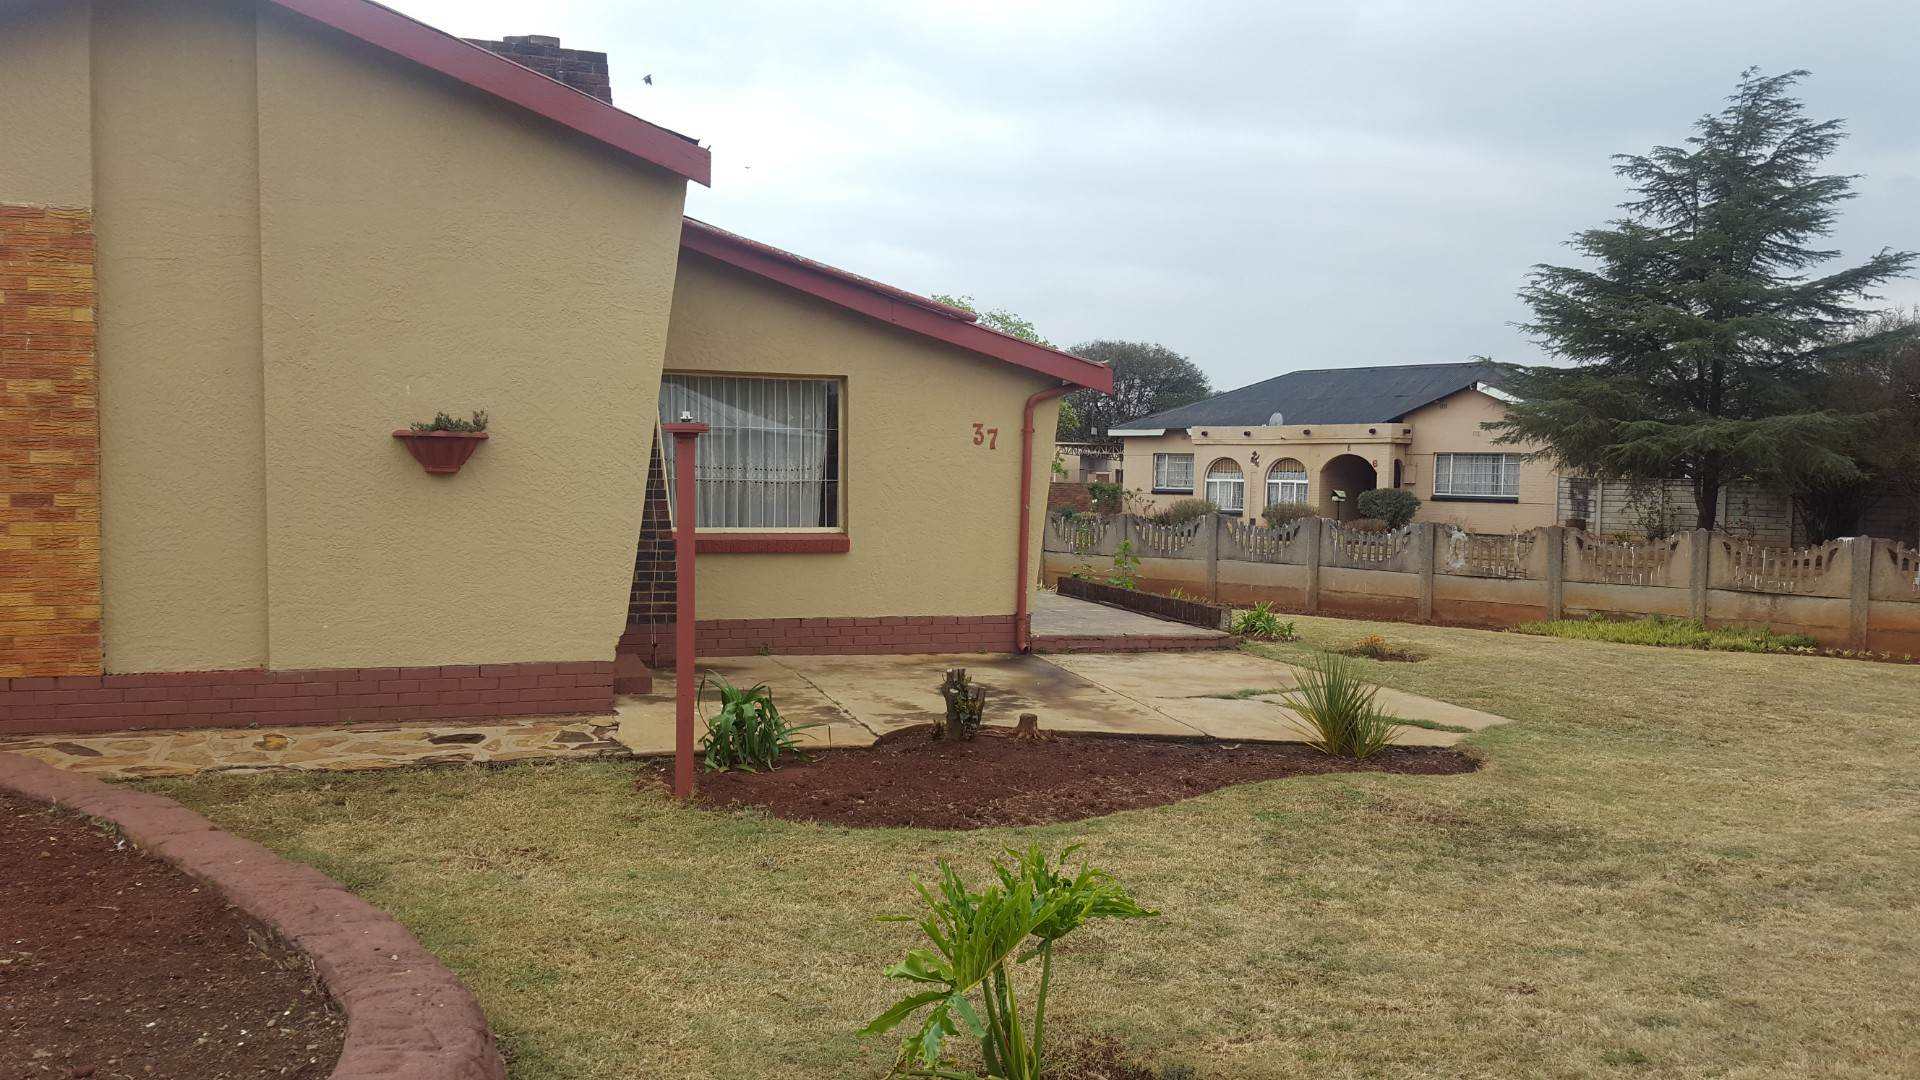 2 BedroomHouse For Sale In Casseldale